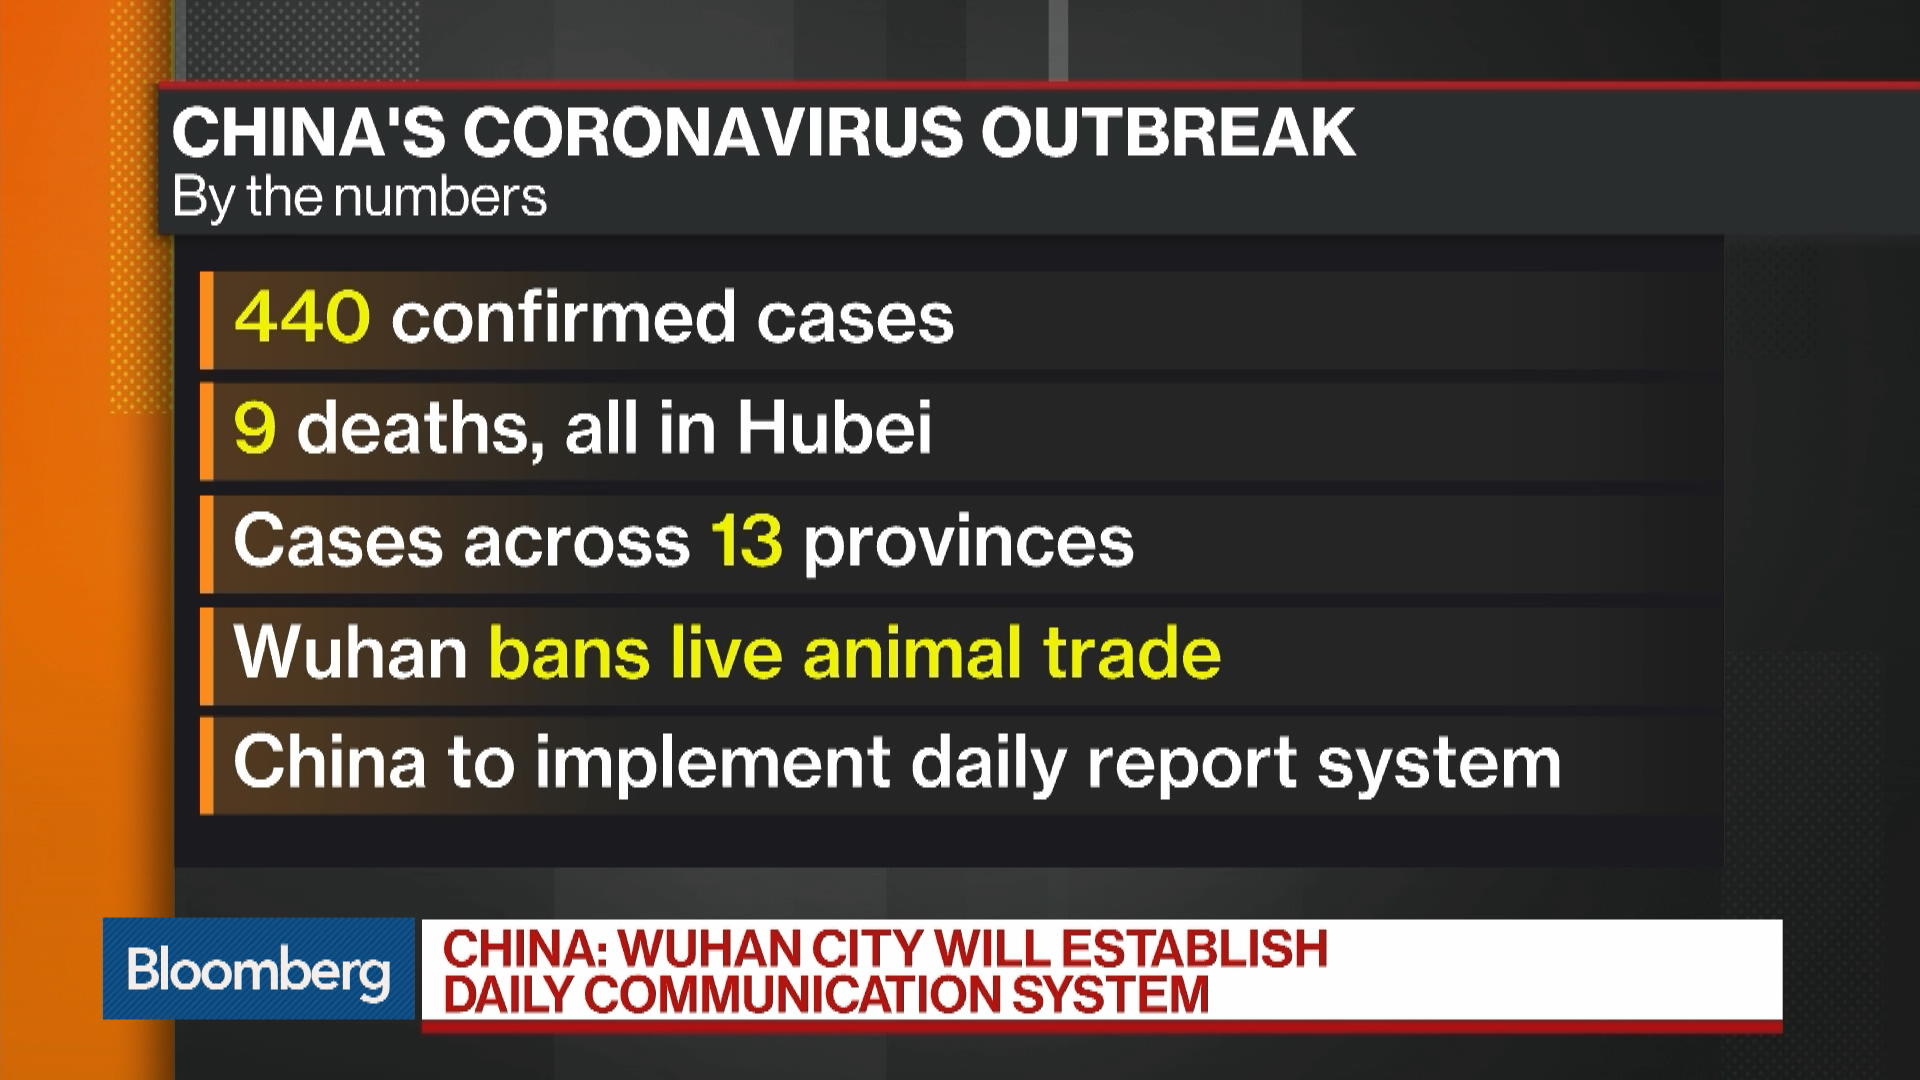 China Holds Press Briefing on Coronavirus Outbreak - Bloomberg